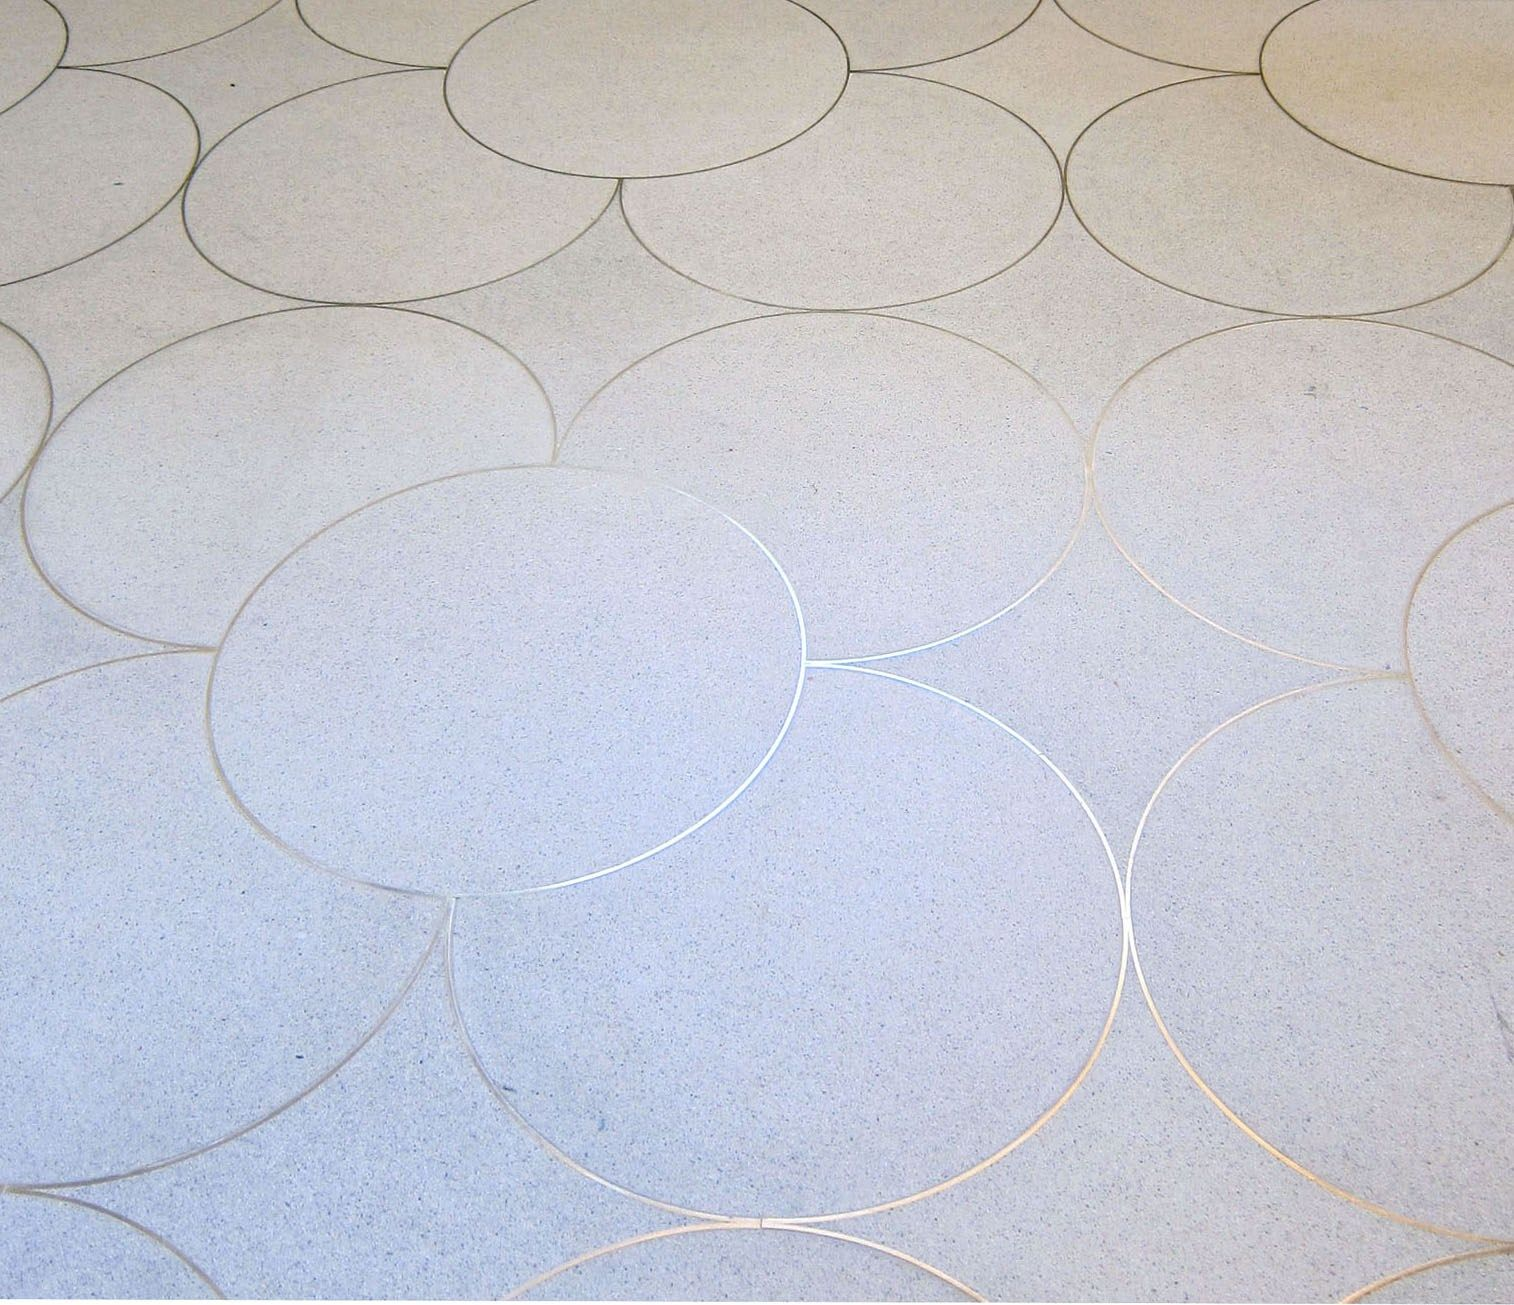 Steel Cut Rings embedded into concrete floors | Tristan Auer ...